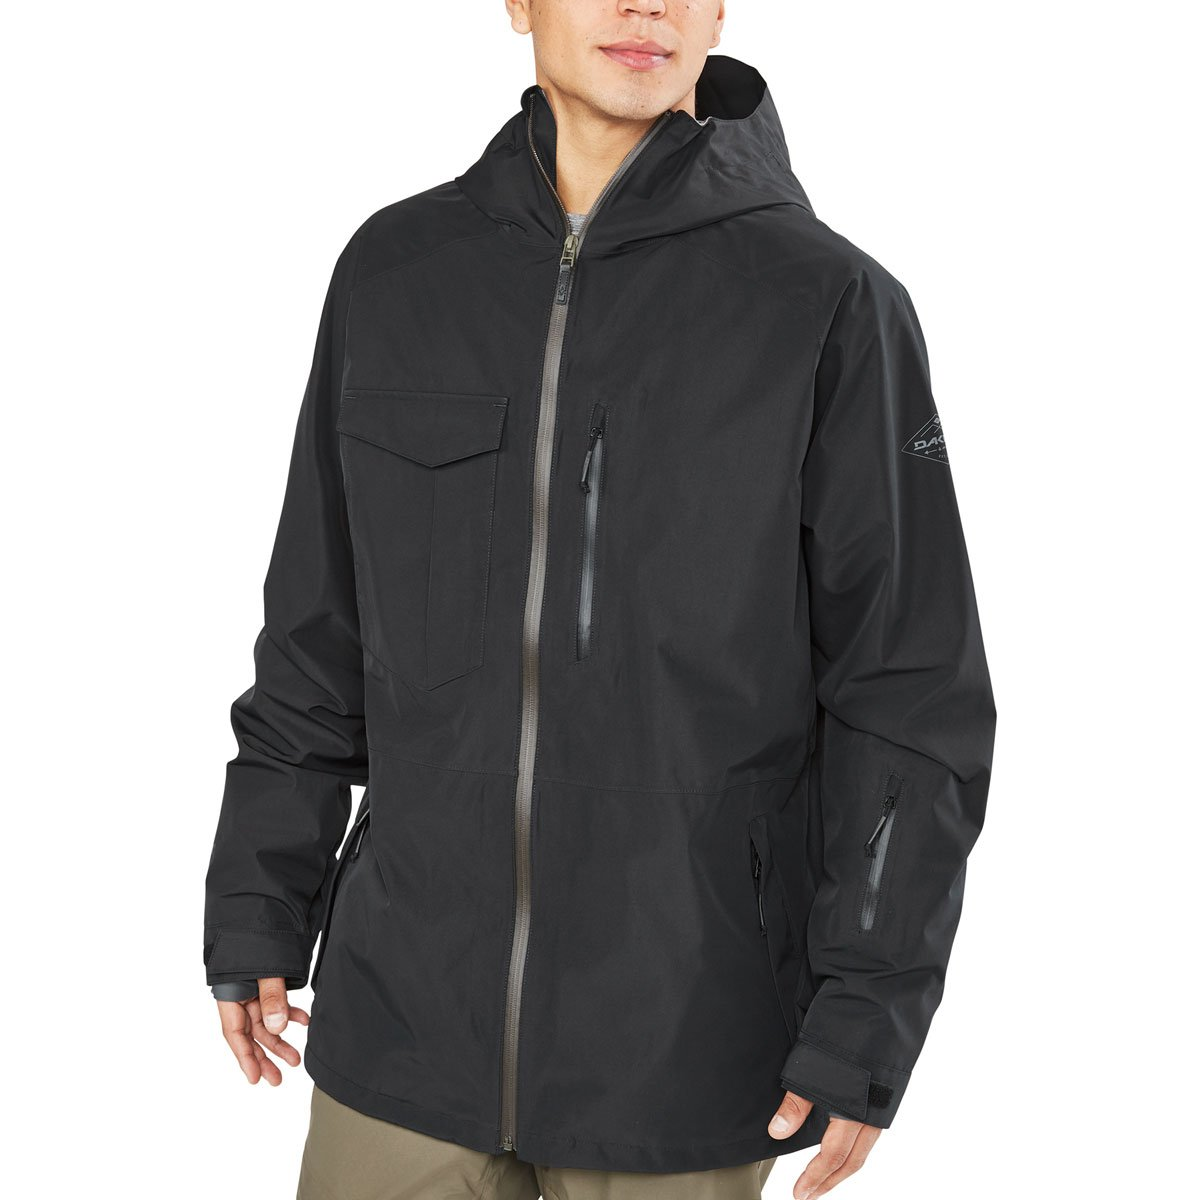 Dakine Smyth Pure GORE-TEX 2L Men's Jacket